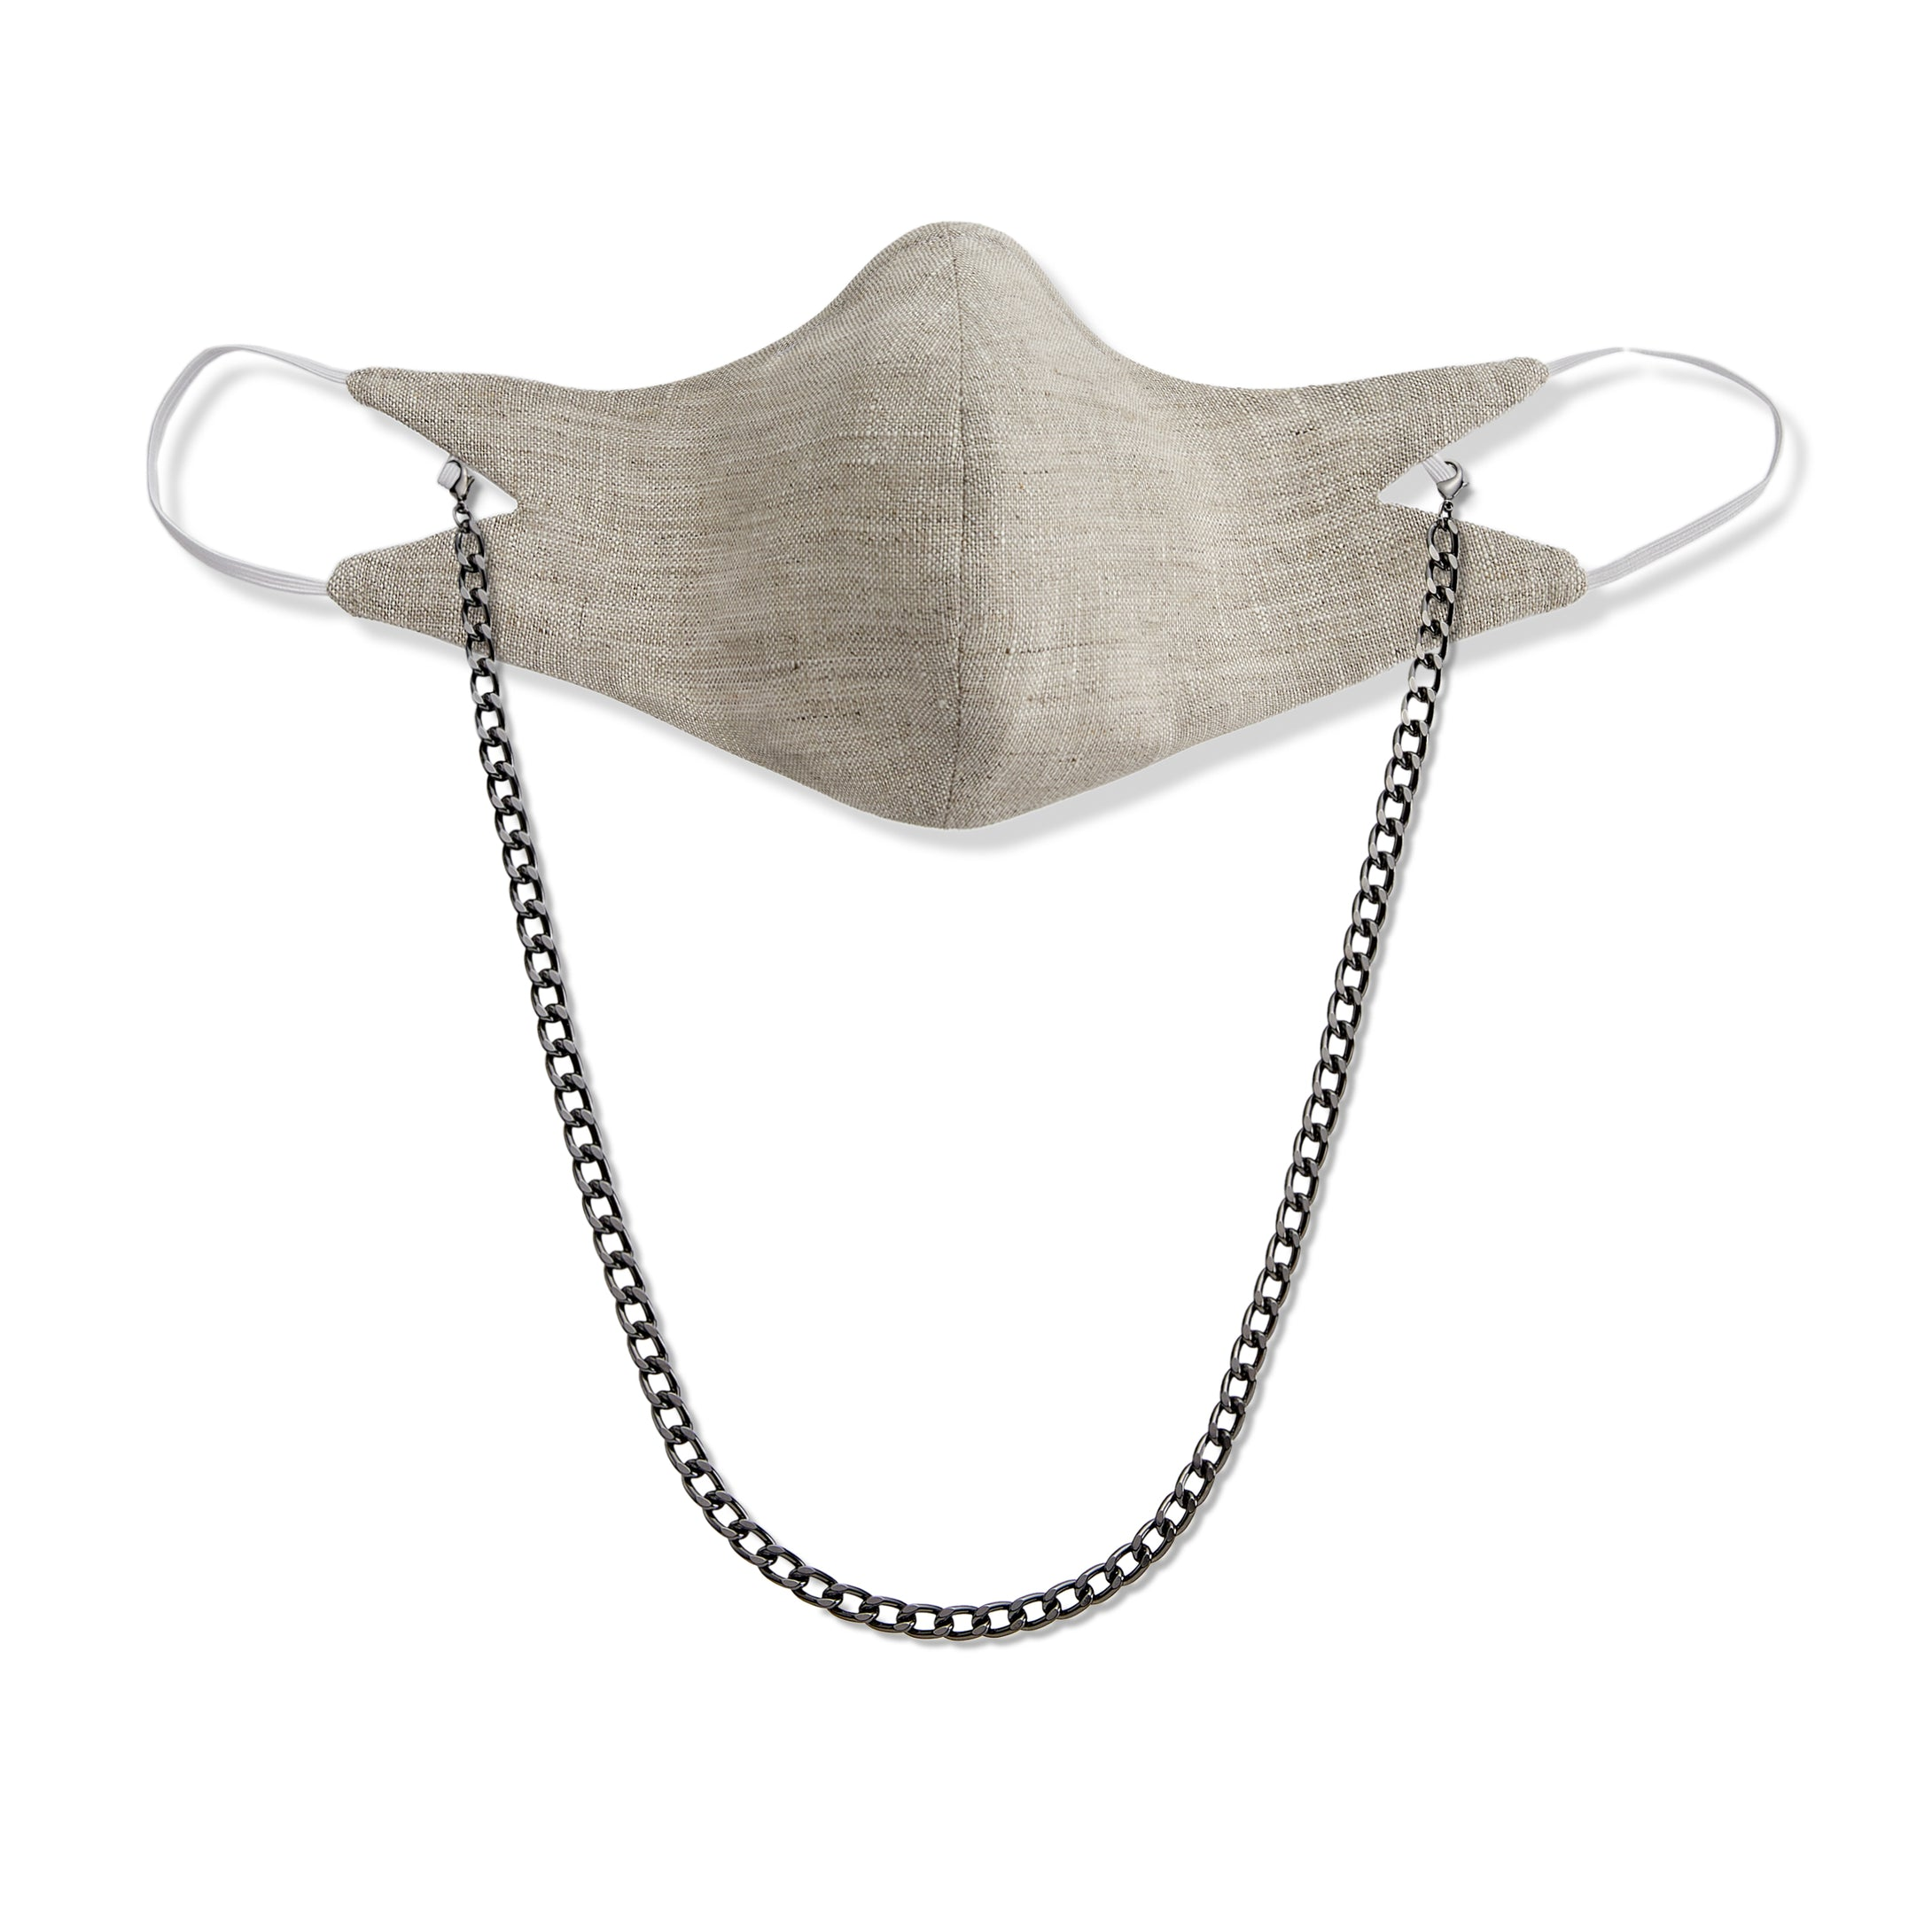 The Tina Mask in Oat With 7mm Gunmetal Chain